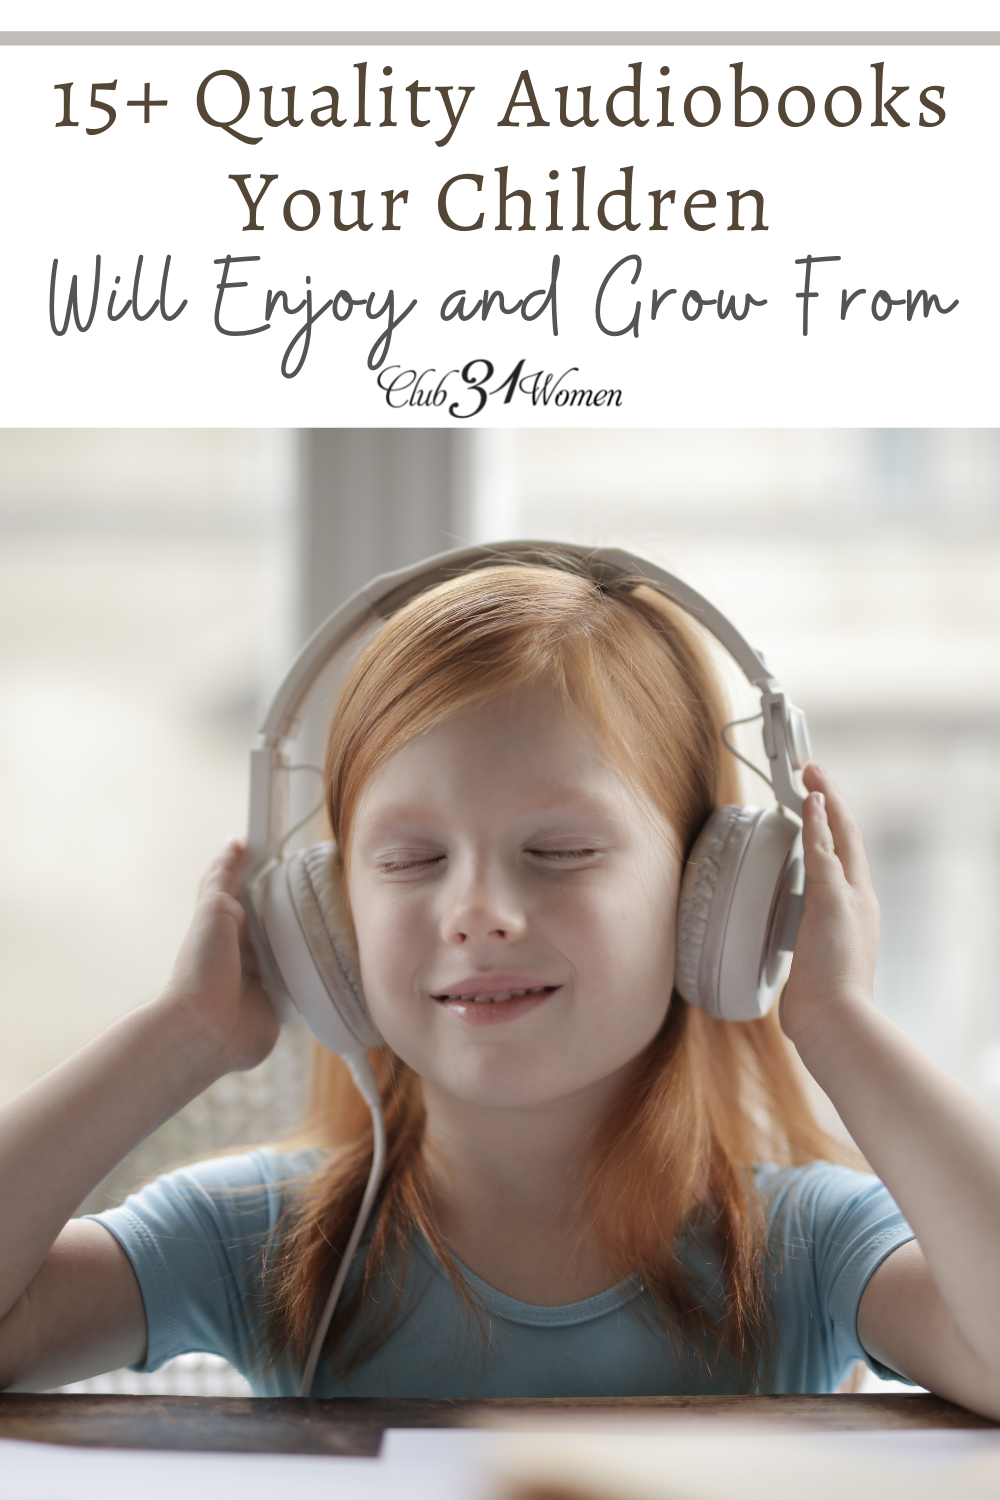 Children can grow their imagination, learn through stories, and appreciate witty characters through quality audiobooks at your fingertips! via @Club31Women